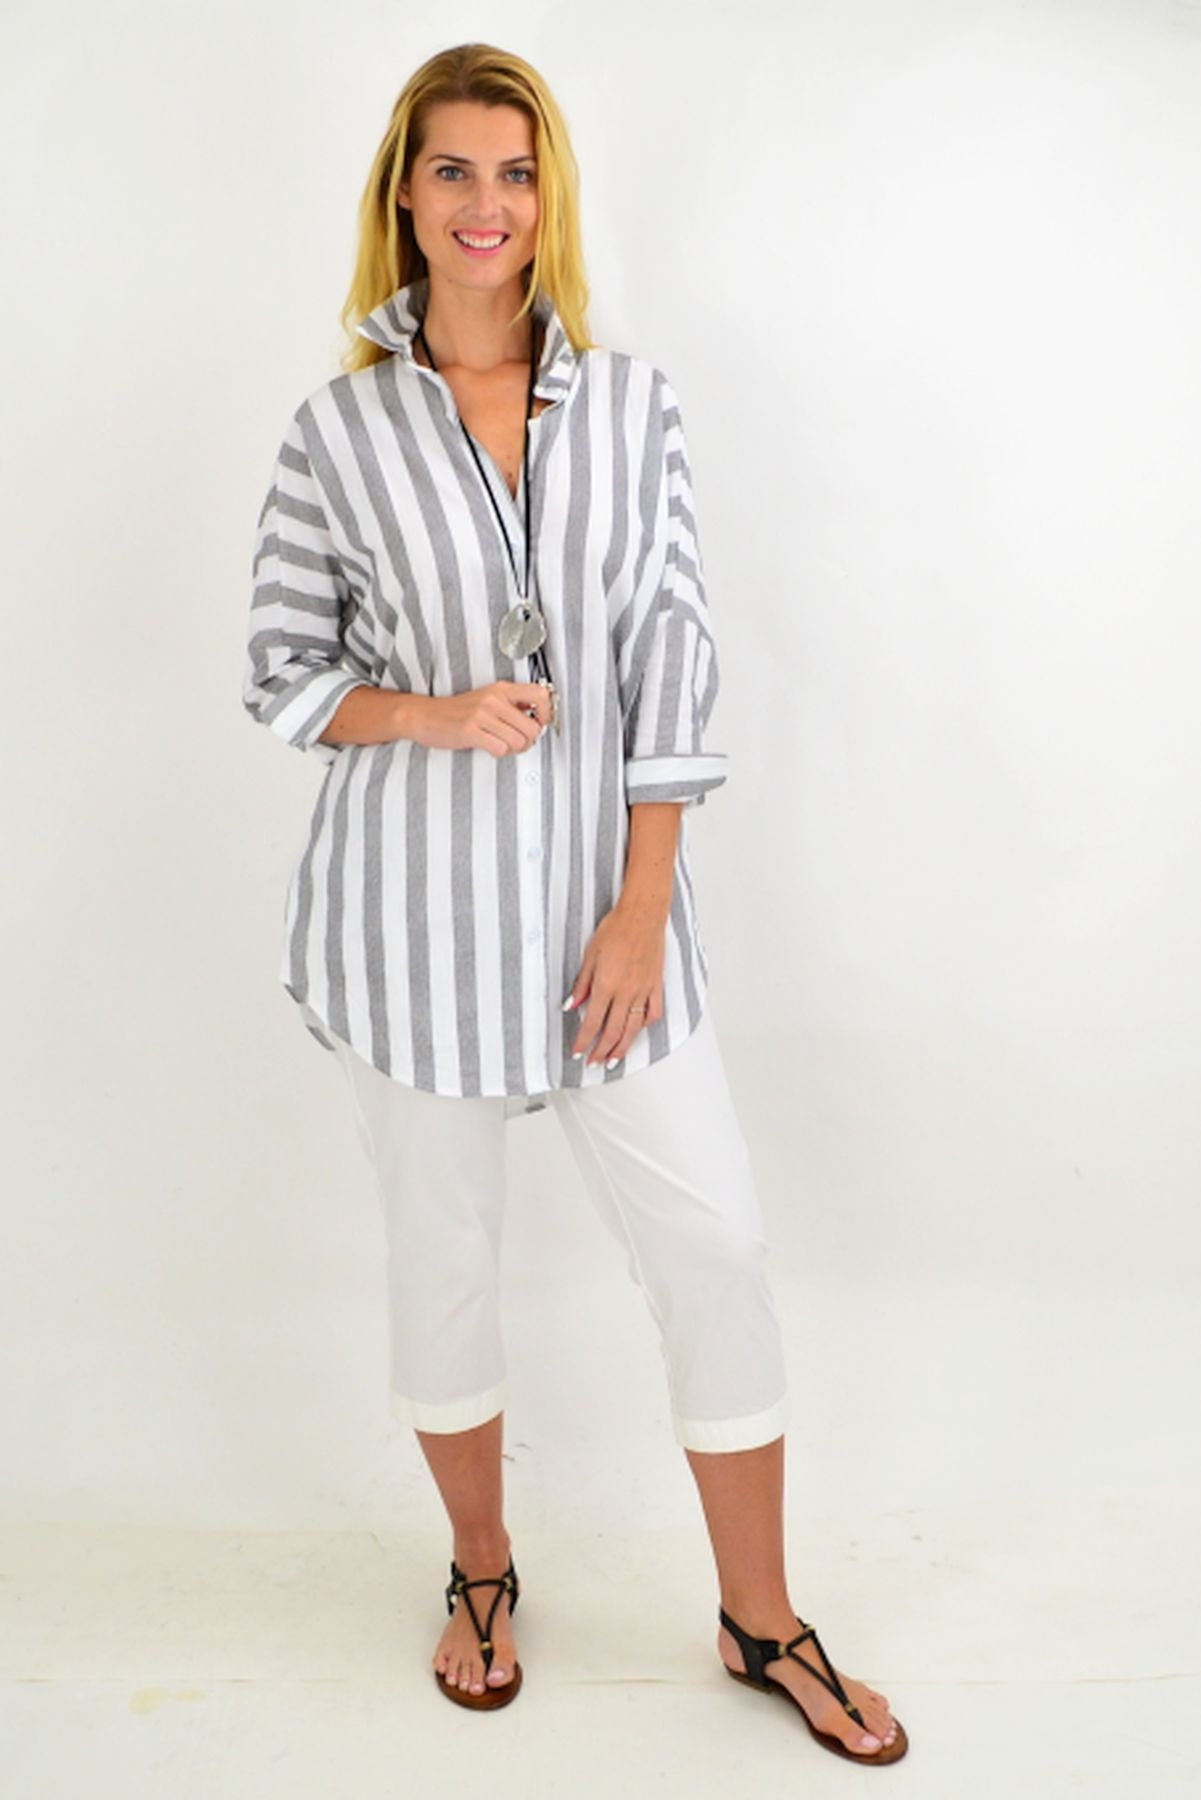 Grey & White Striped Cotton Shirt | I Love Tunics | Tunic Tops | Tunic | Tunic Dresses  | womens clothing online